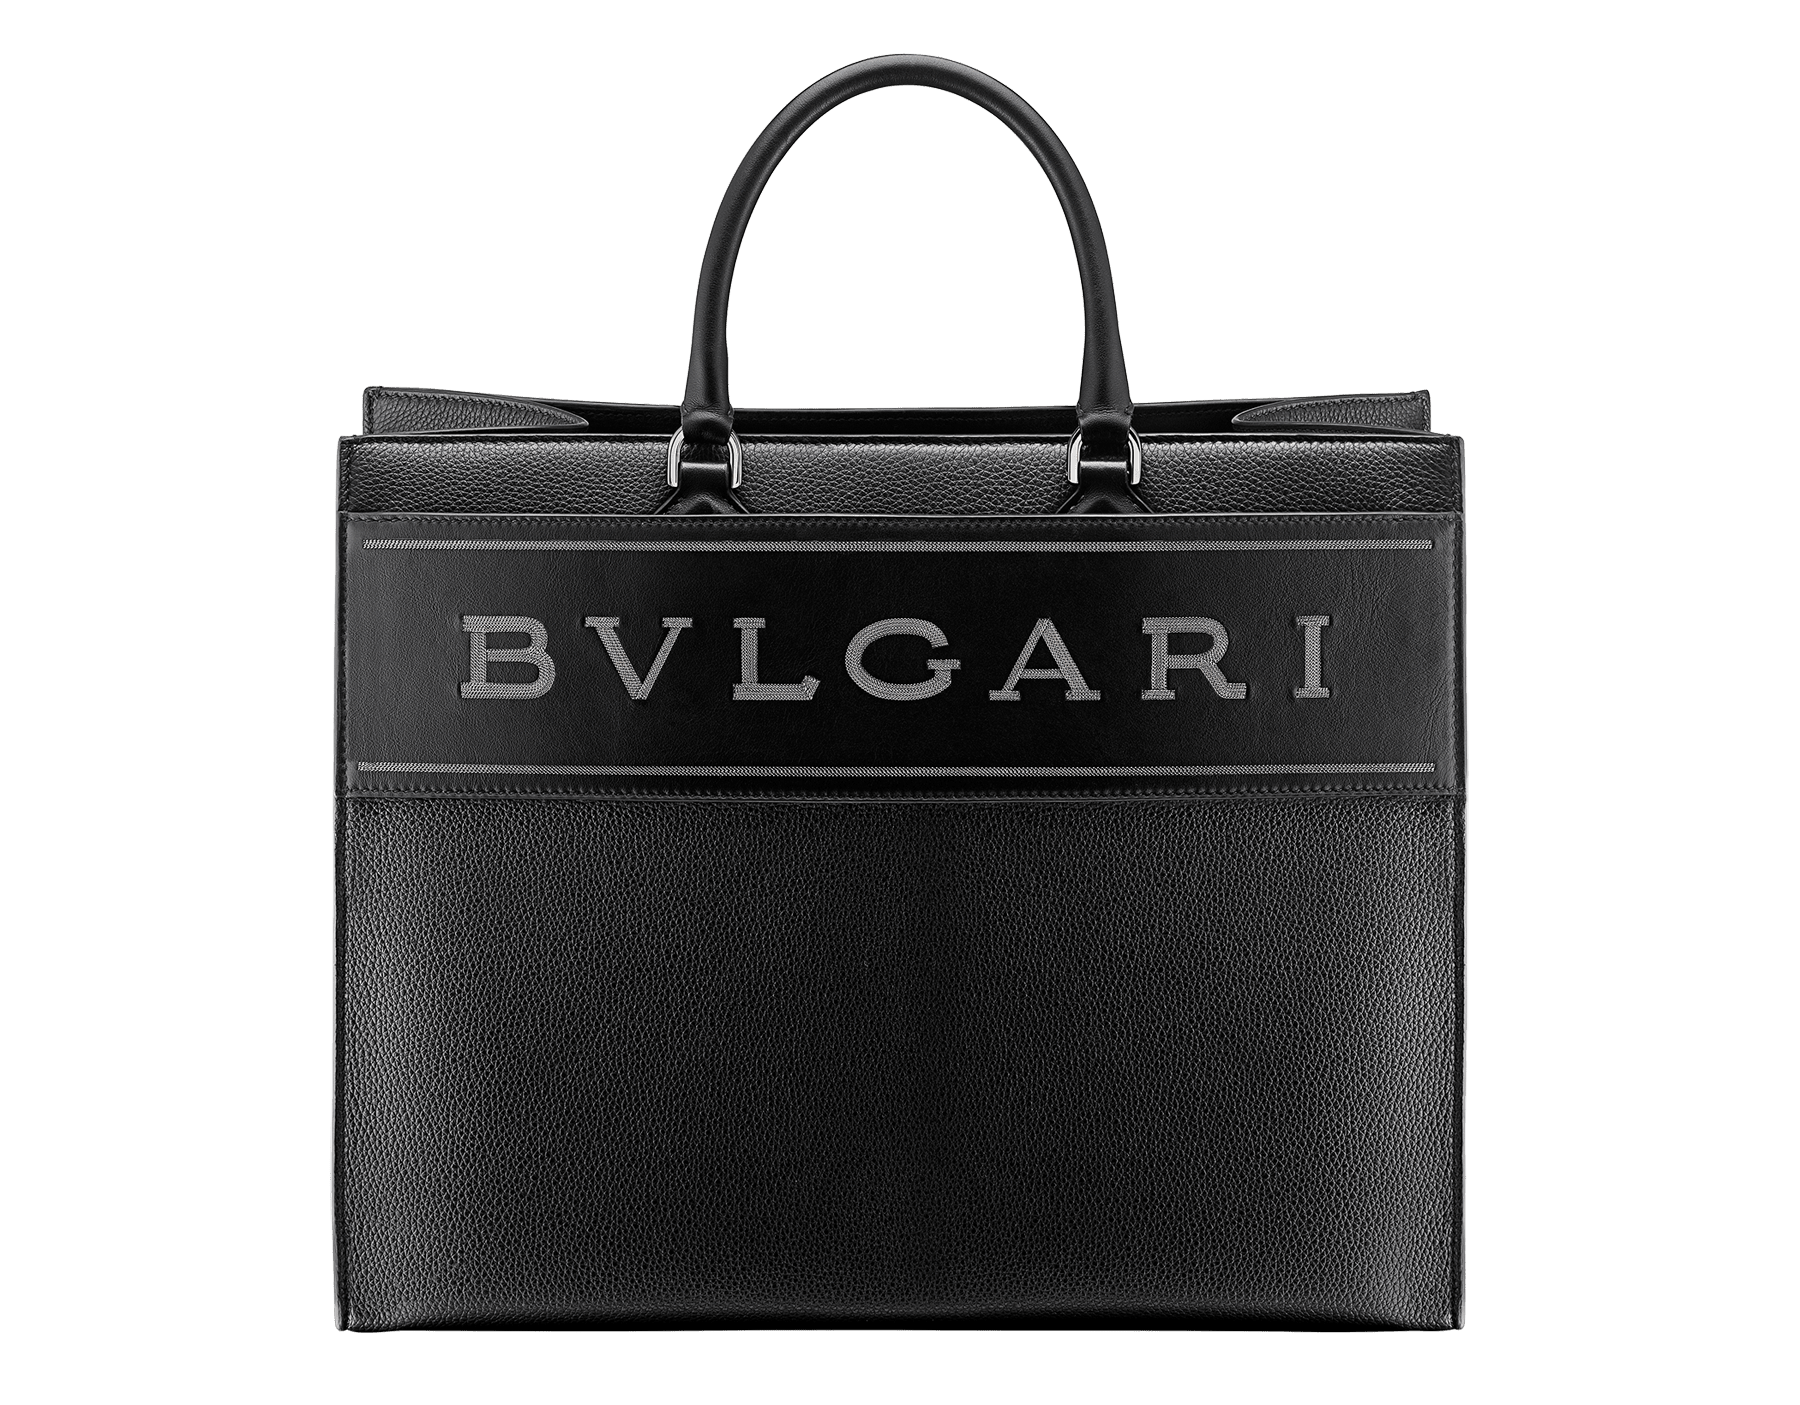 """Bvlgari Logo"" large tote bag in black calf leather, with black grosgrain inner lining. Bvlgari logo featured with dark ruthenium-plated brass chain inserts on the black calf leather. BVL-1160 image 1"